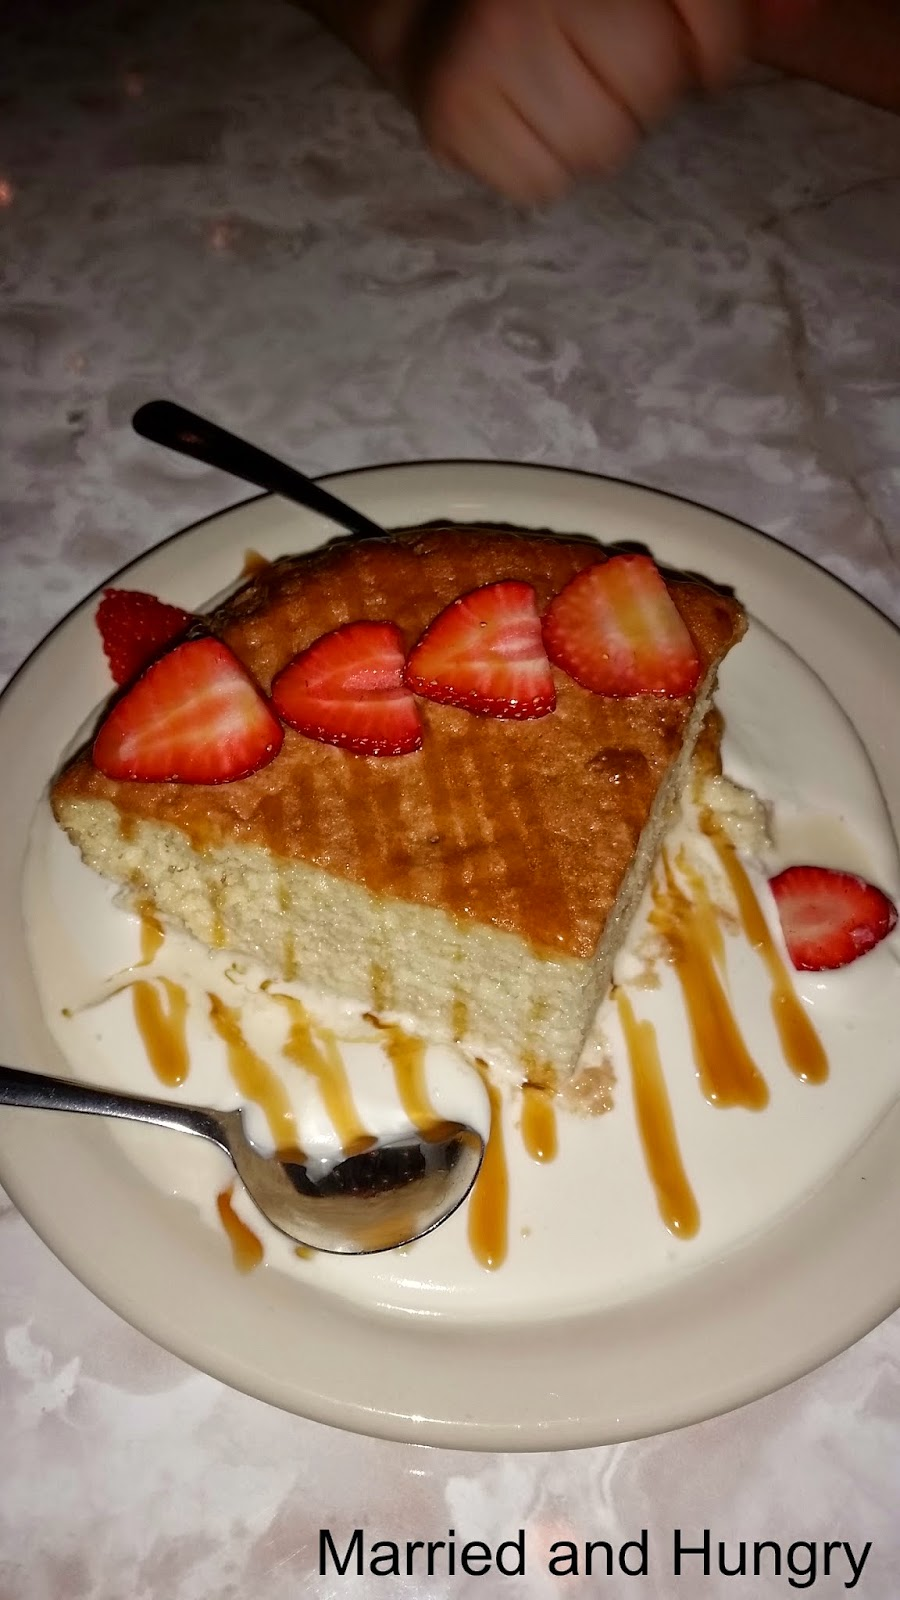 Tres Leches Cake from Chuy's. Pure goodness!!!